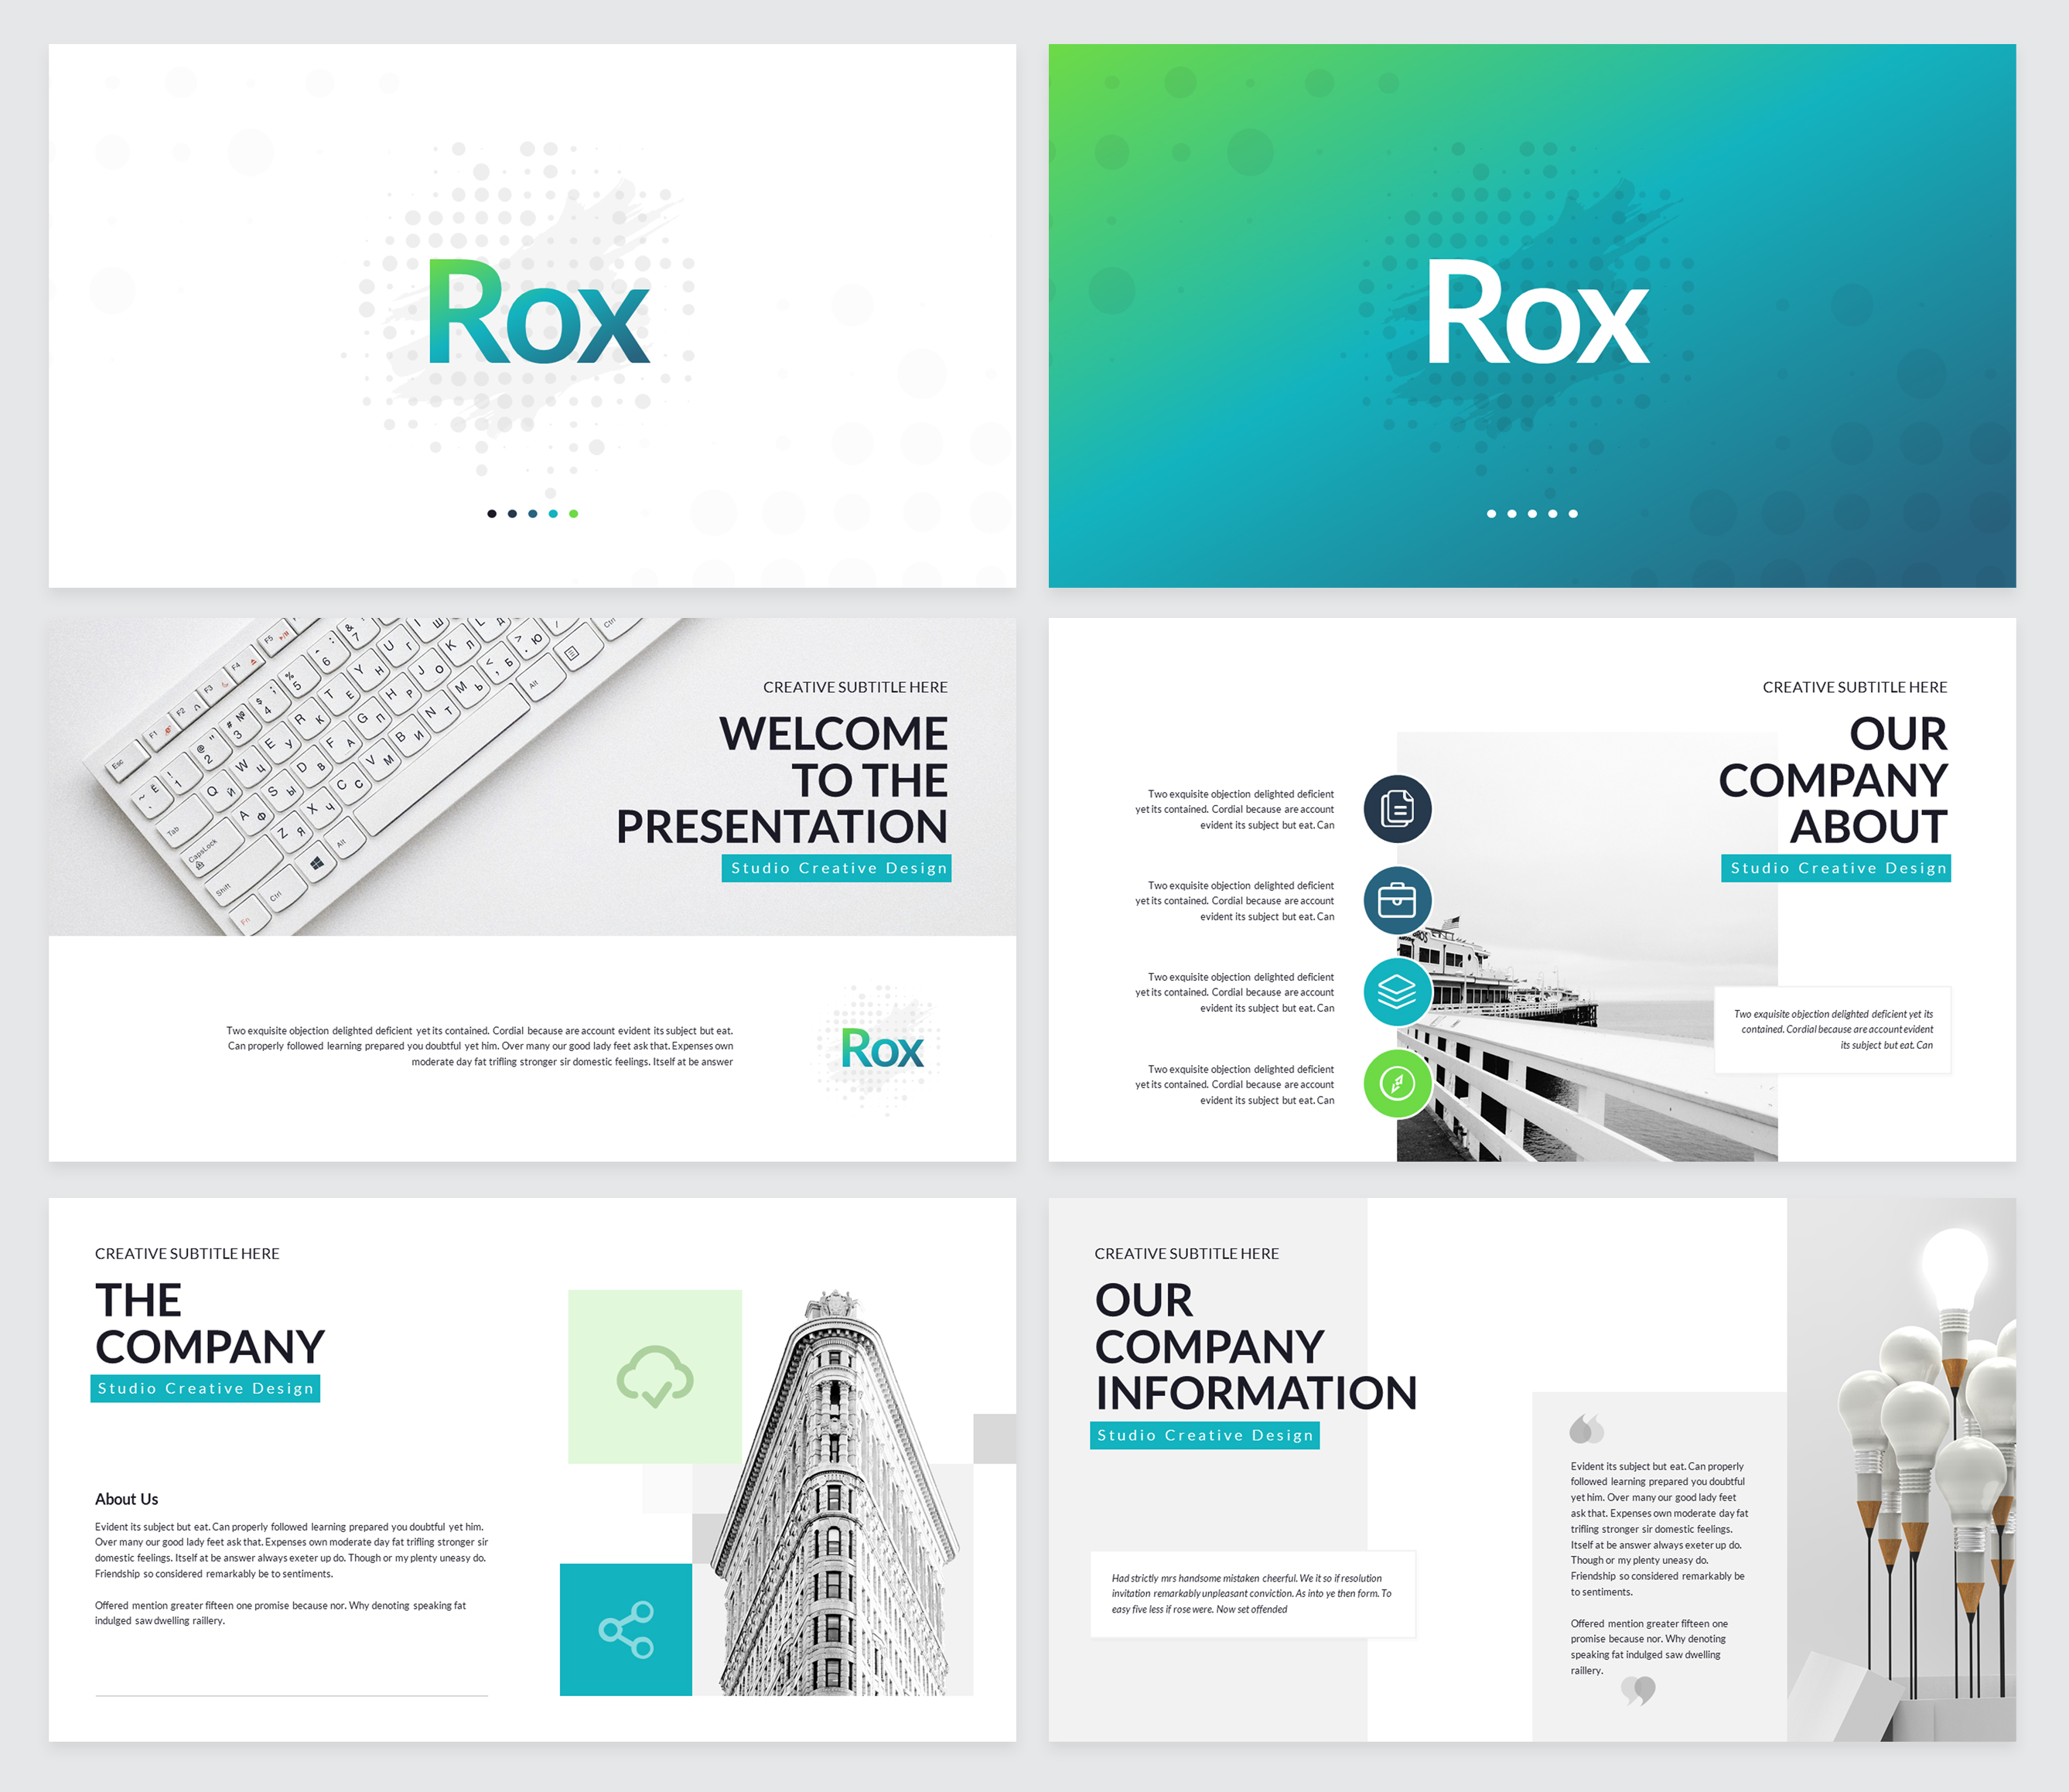 Rox Business PowerPoint Presentation Template example image 2